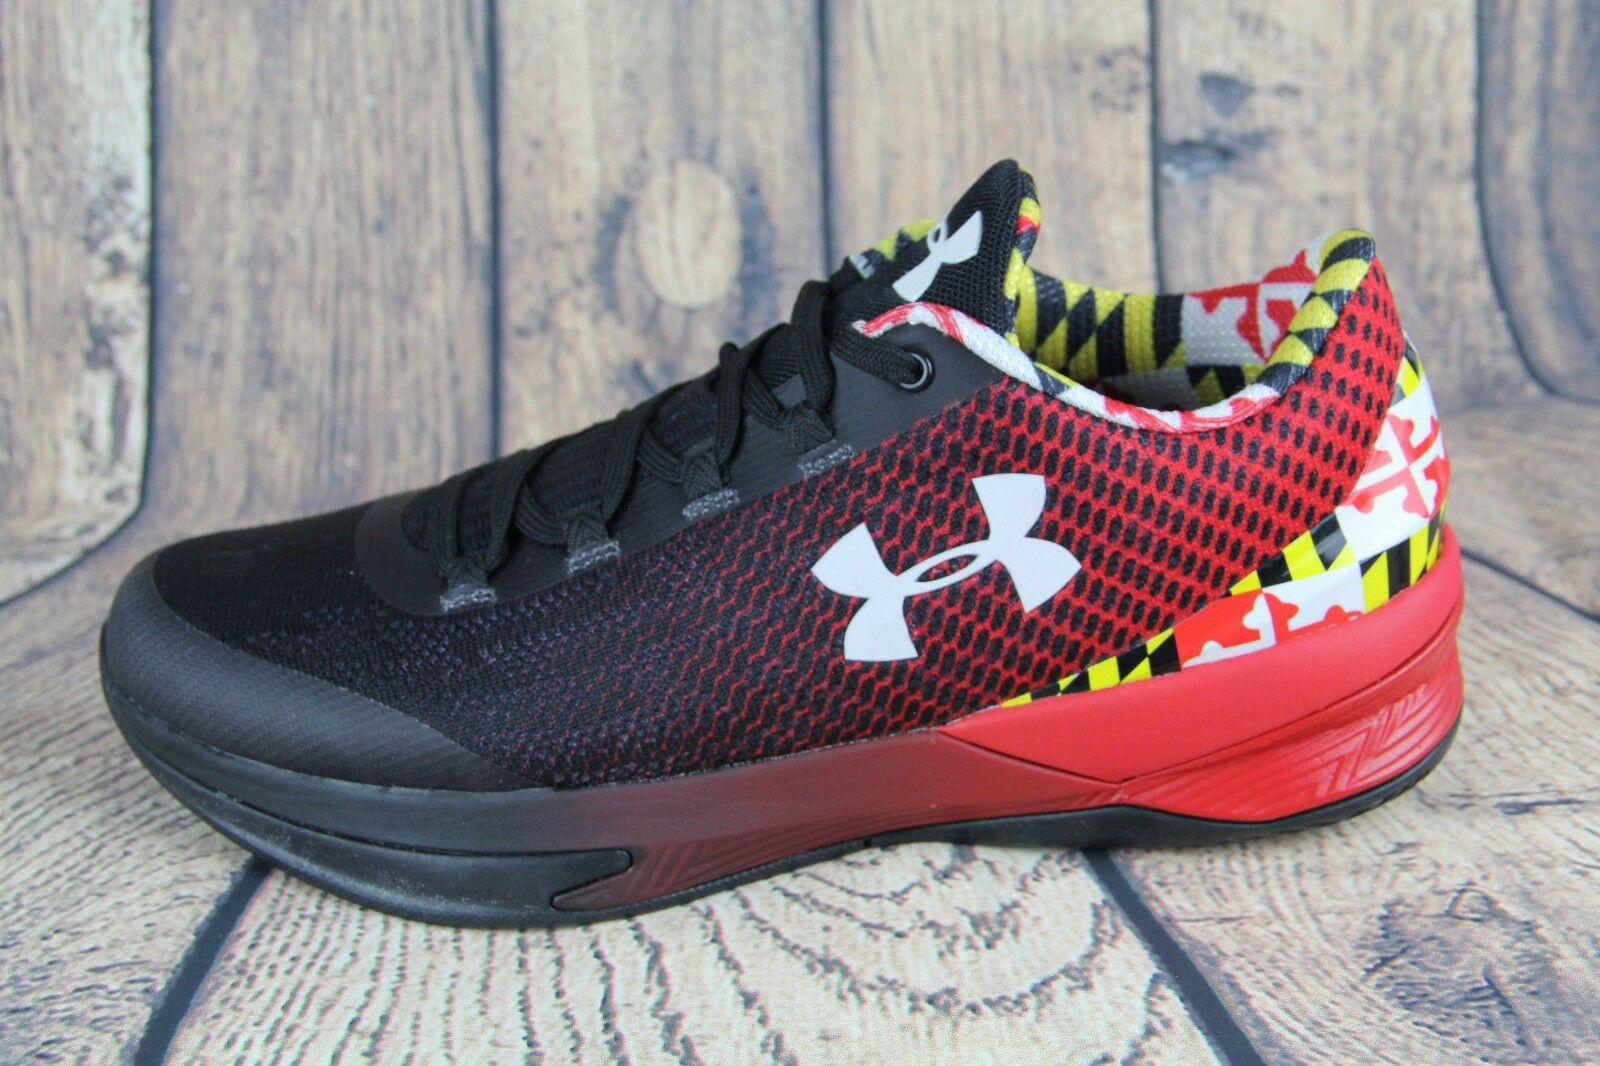 1be36633eed Under Armour Charged Controller Maryland Terrapins Shoes Black 1286379-600  Sz 9 for sale online